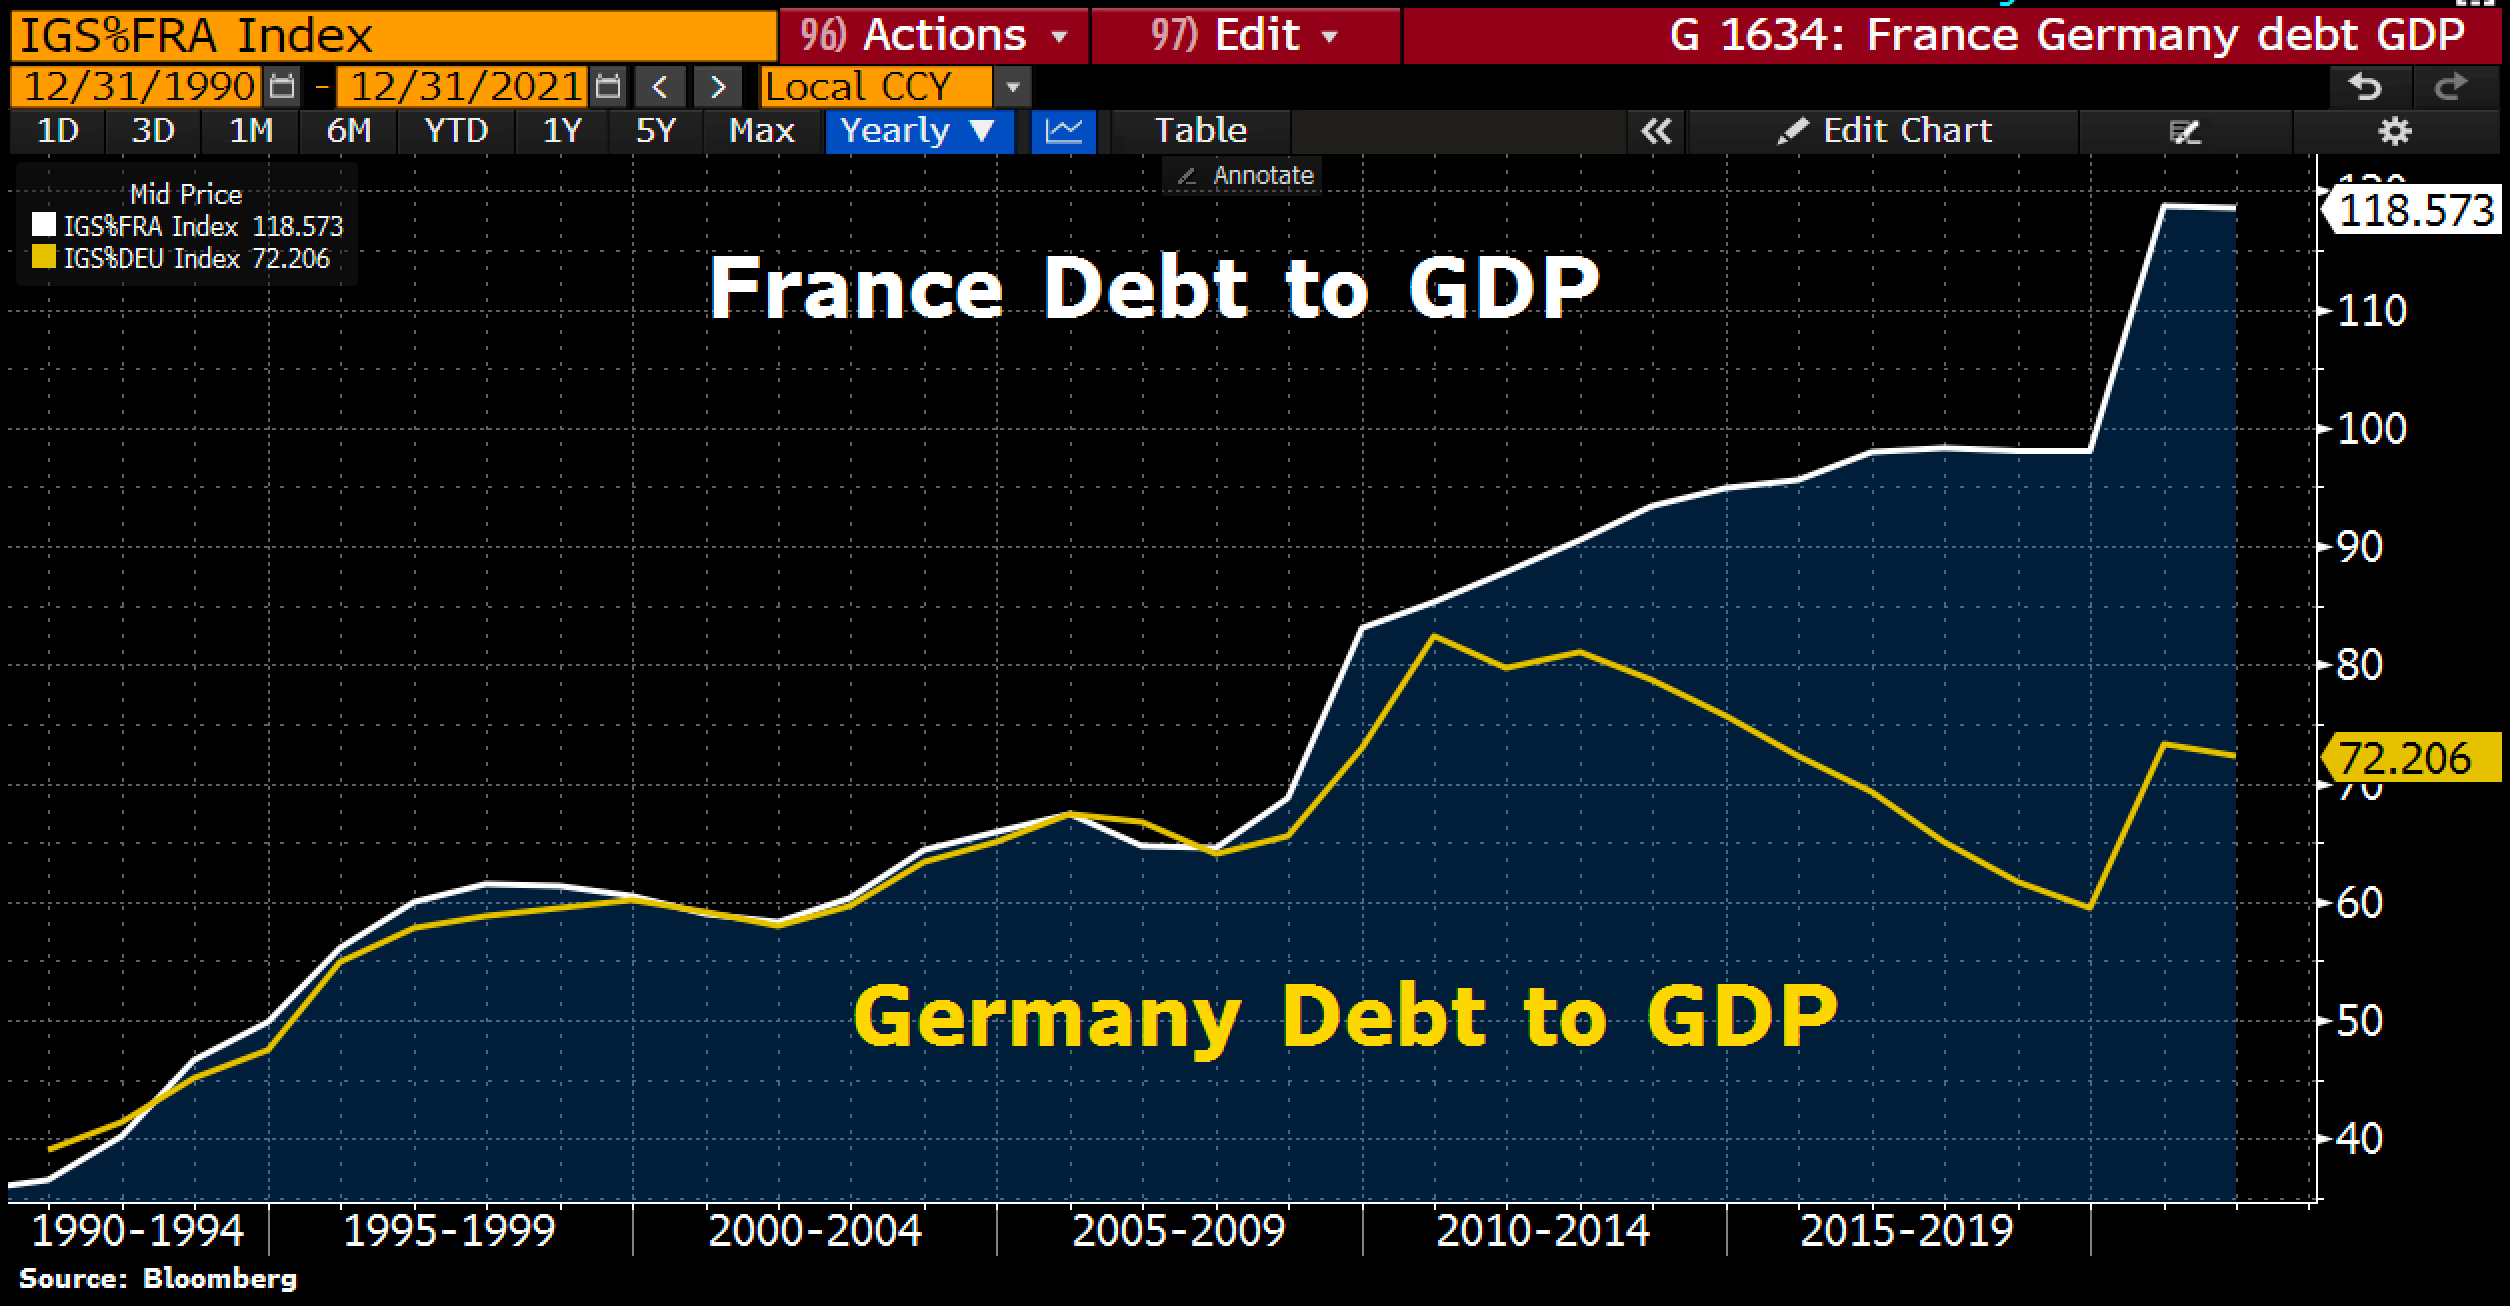 France & Germany Debt to GDP ratio